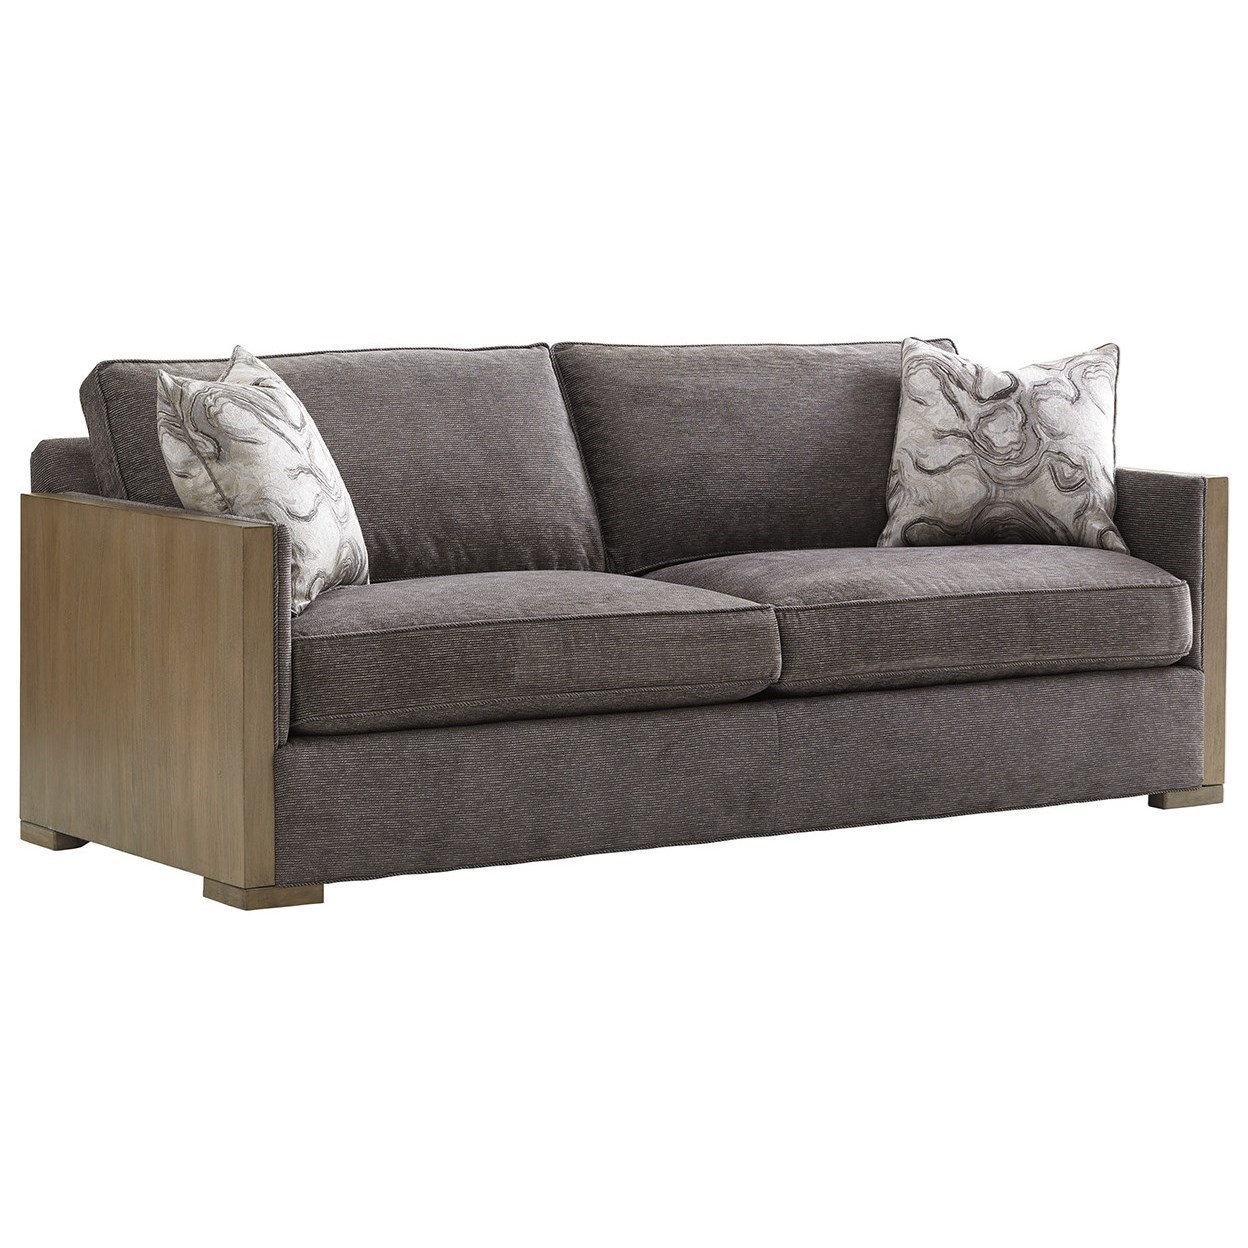 Shadow Play Delshire Sofa by Lexington at Jacksonville Furniture Mart